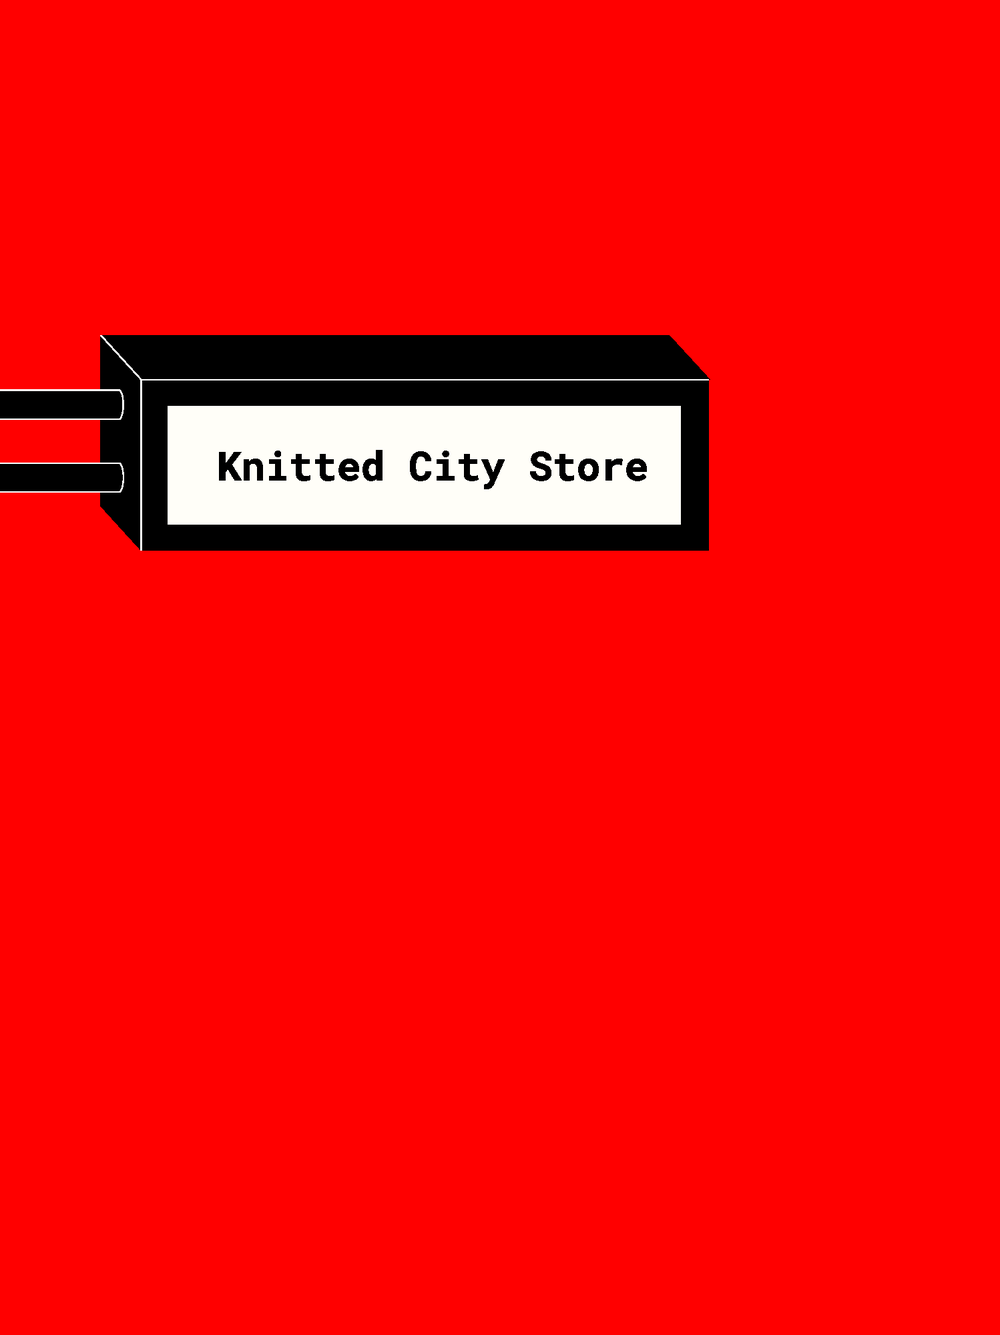 Knitted-City-Store-Logo.png